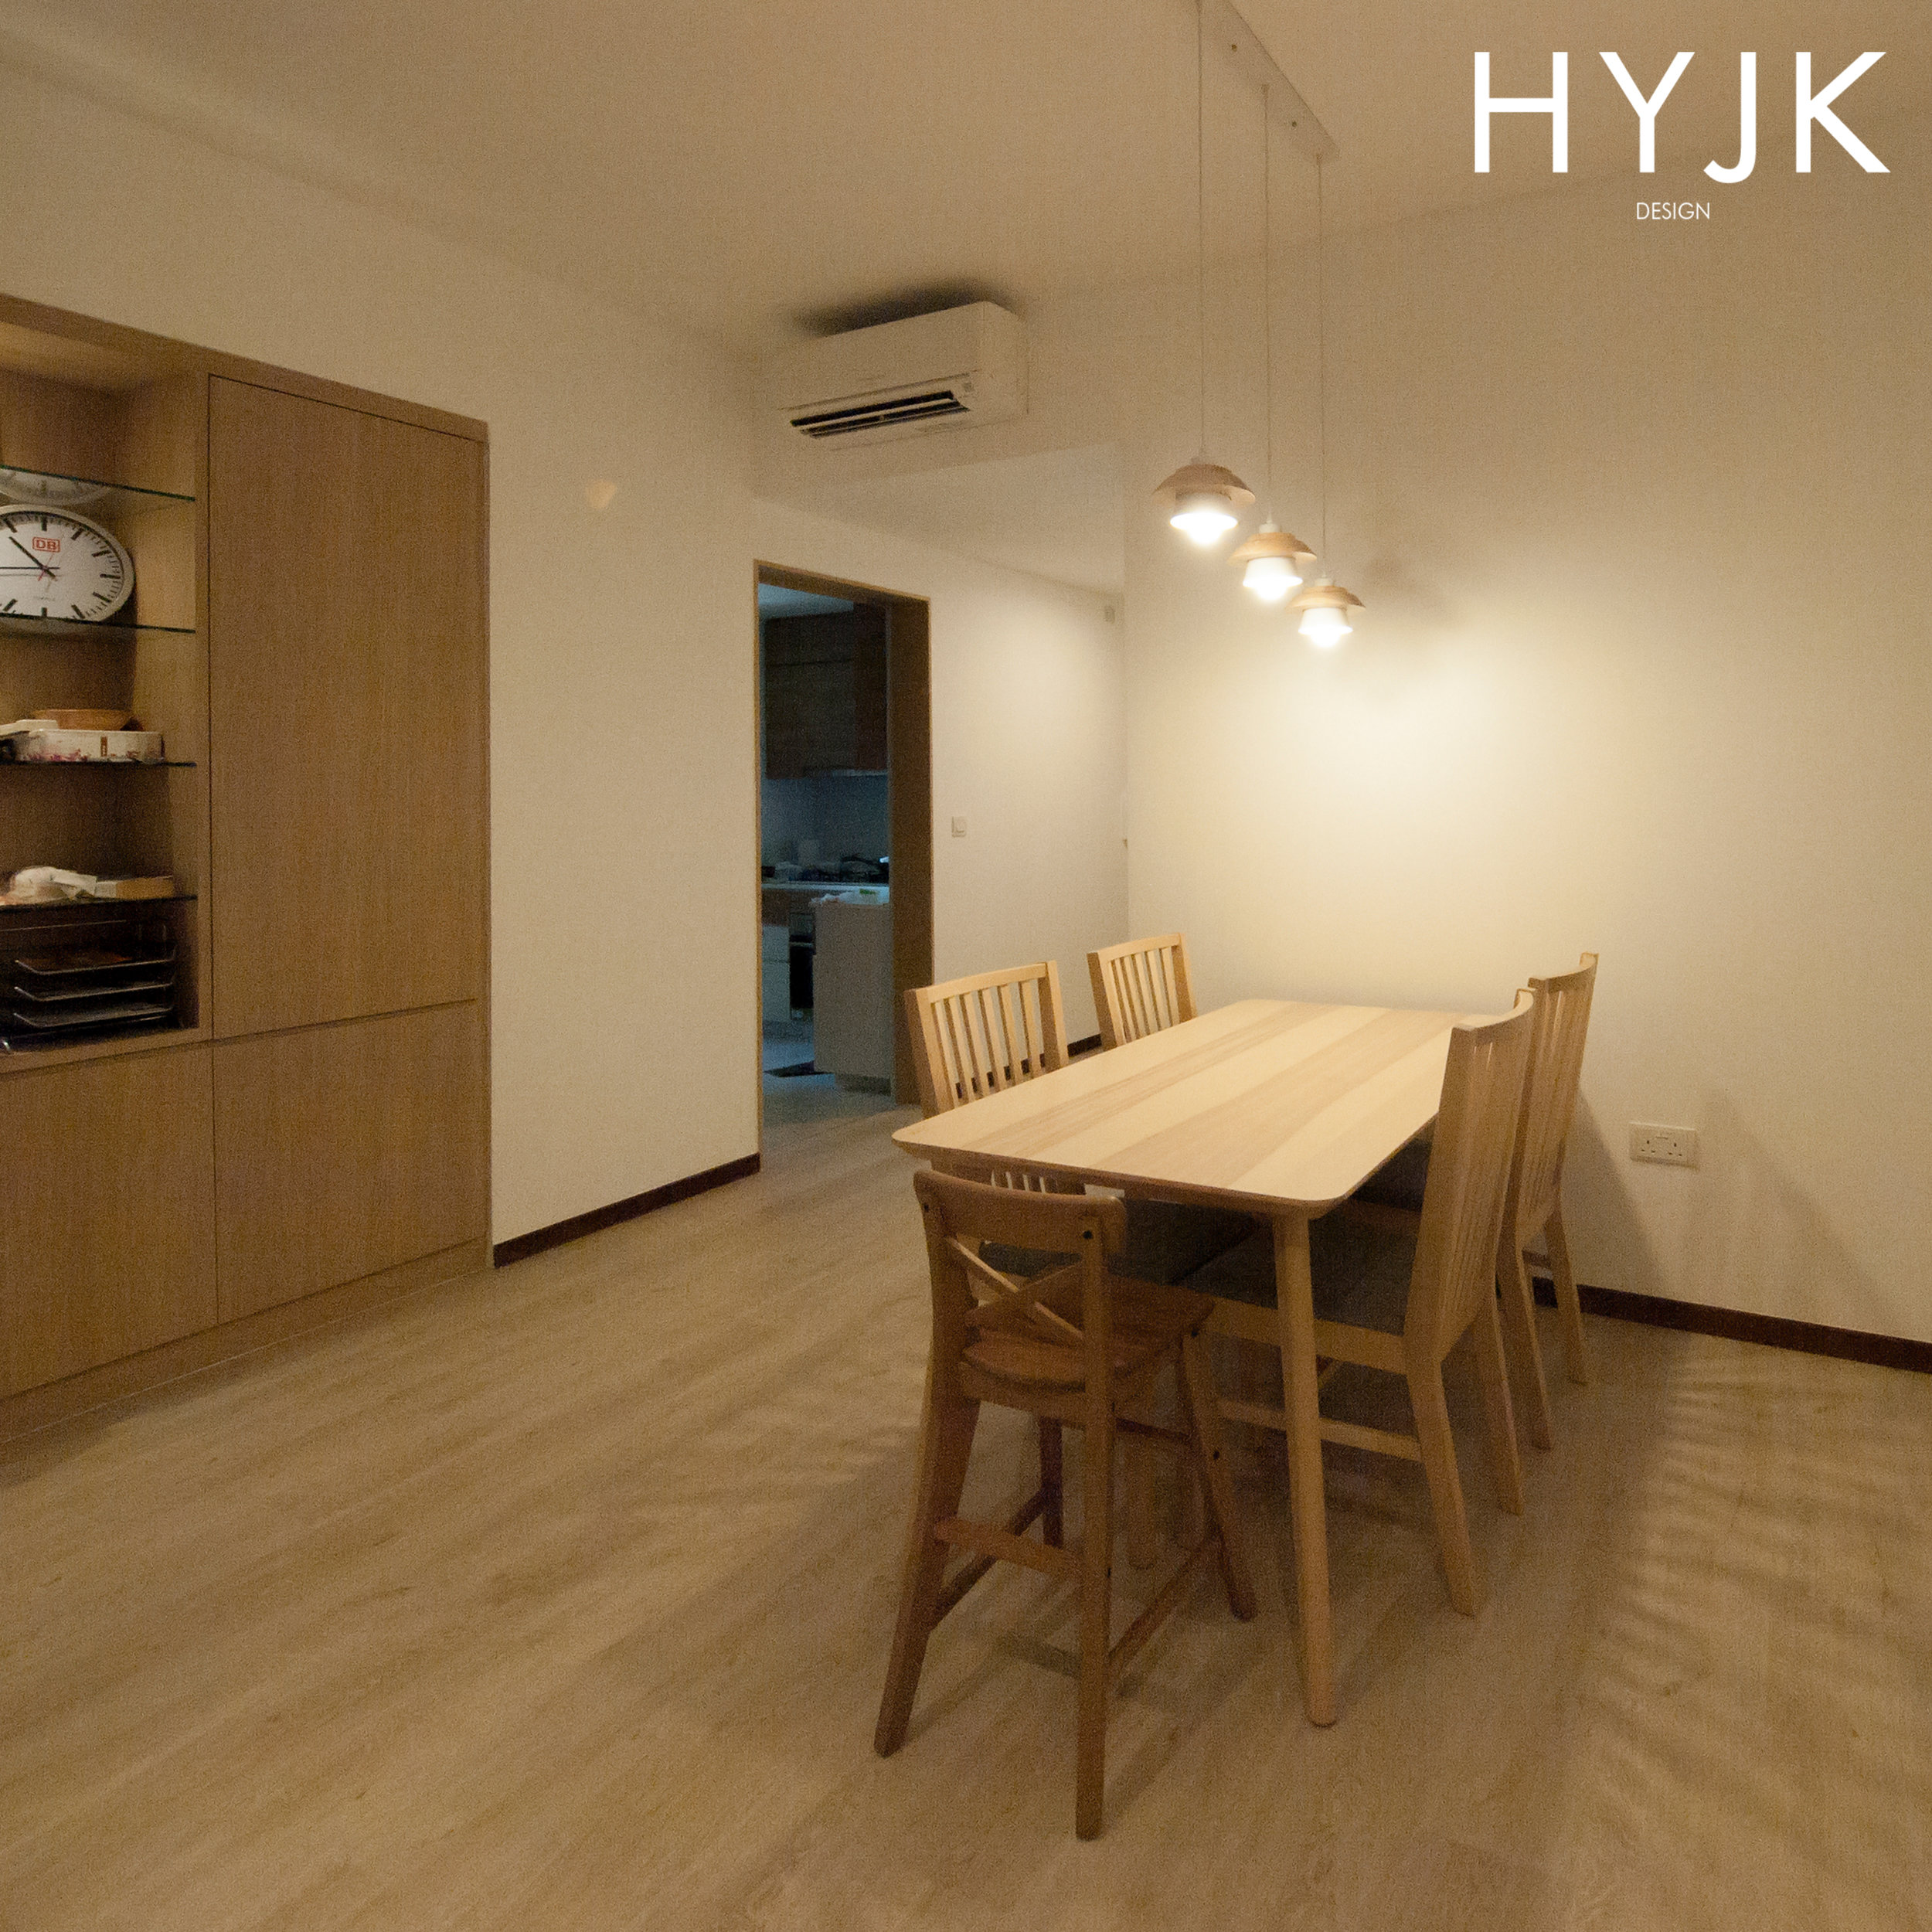 Clean and simple dining set.